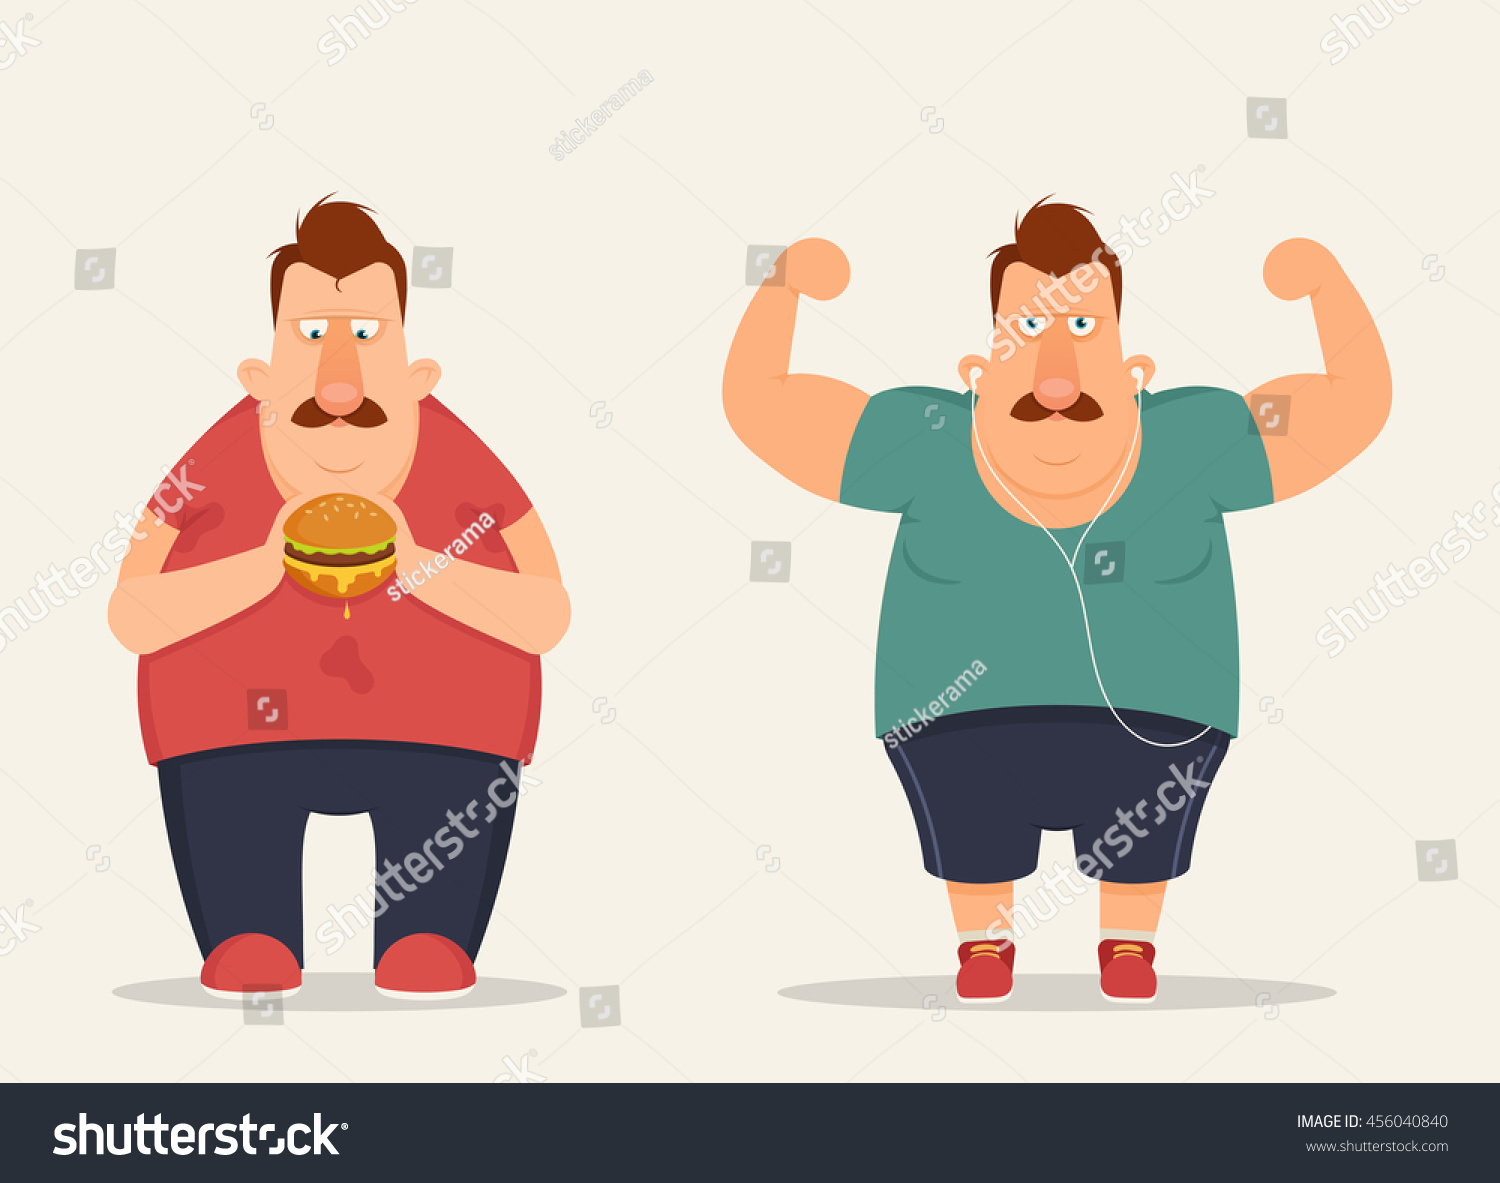 funny cartoon character eating burger doing stock vector